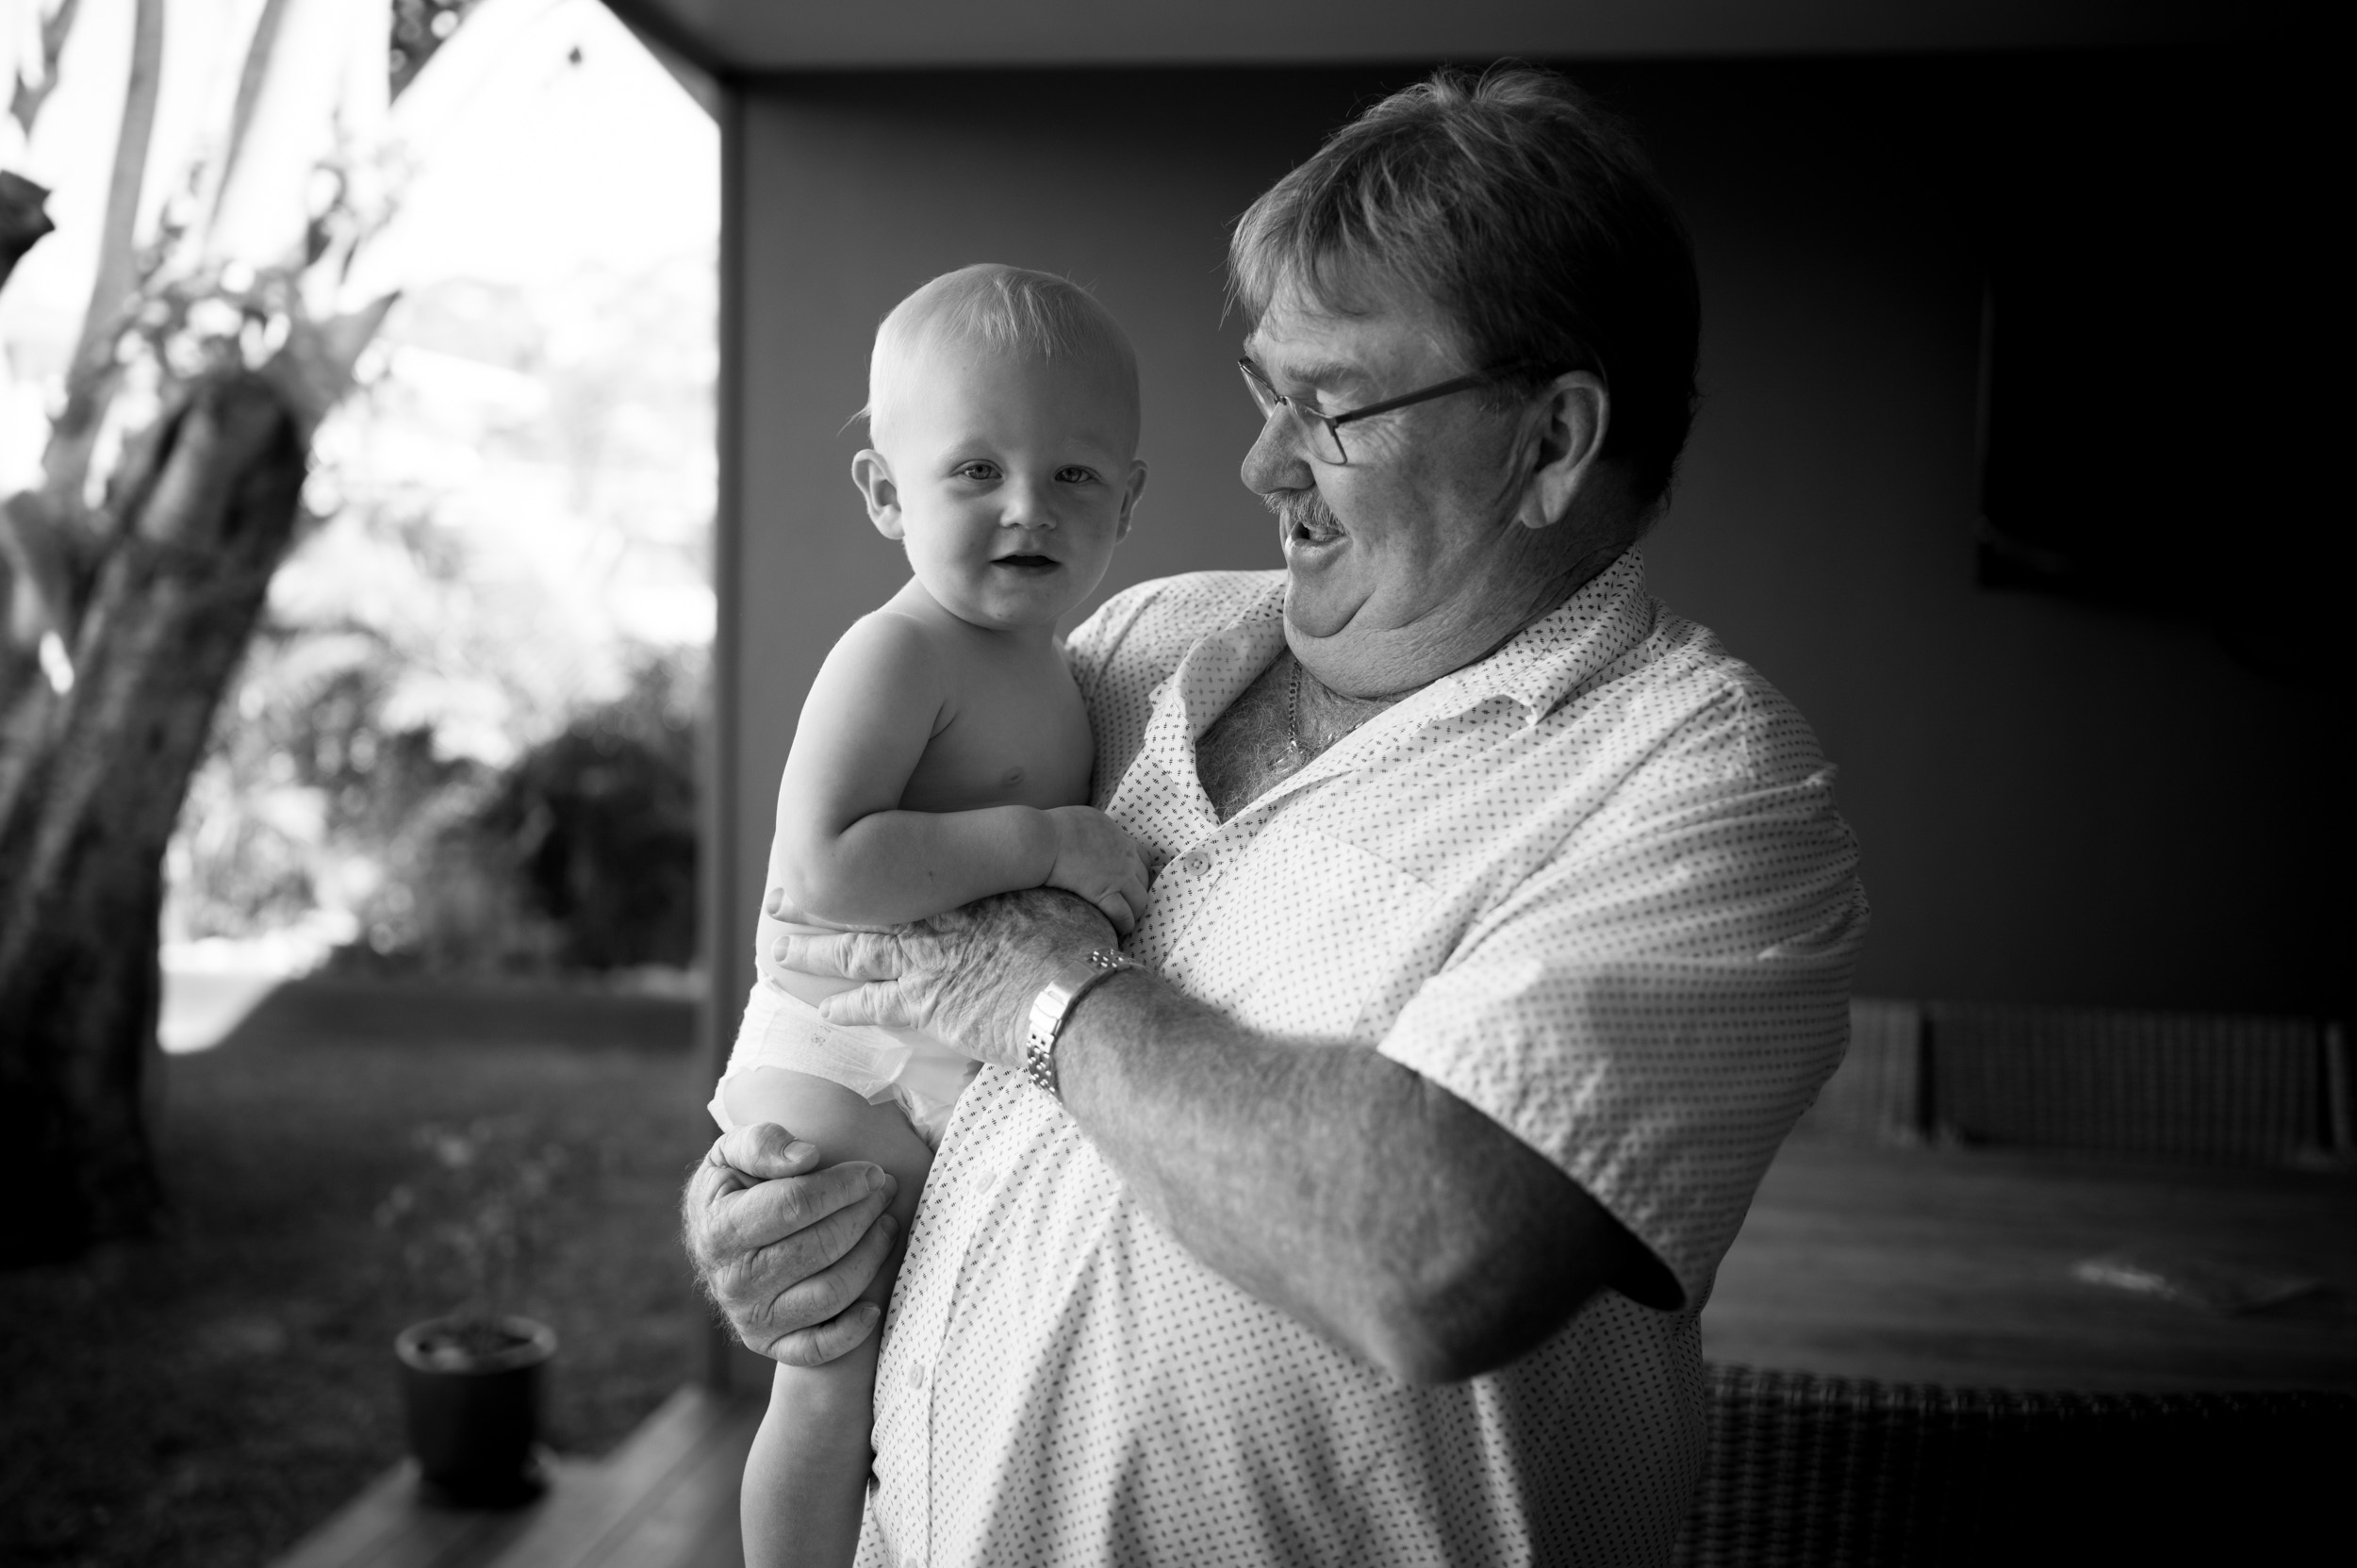 grandfather and grandson baby photography central coast